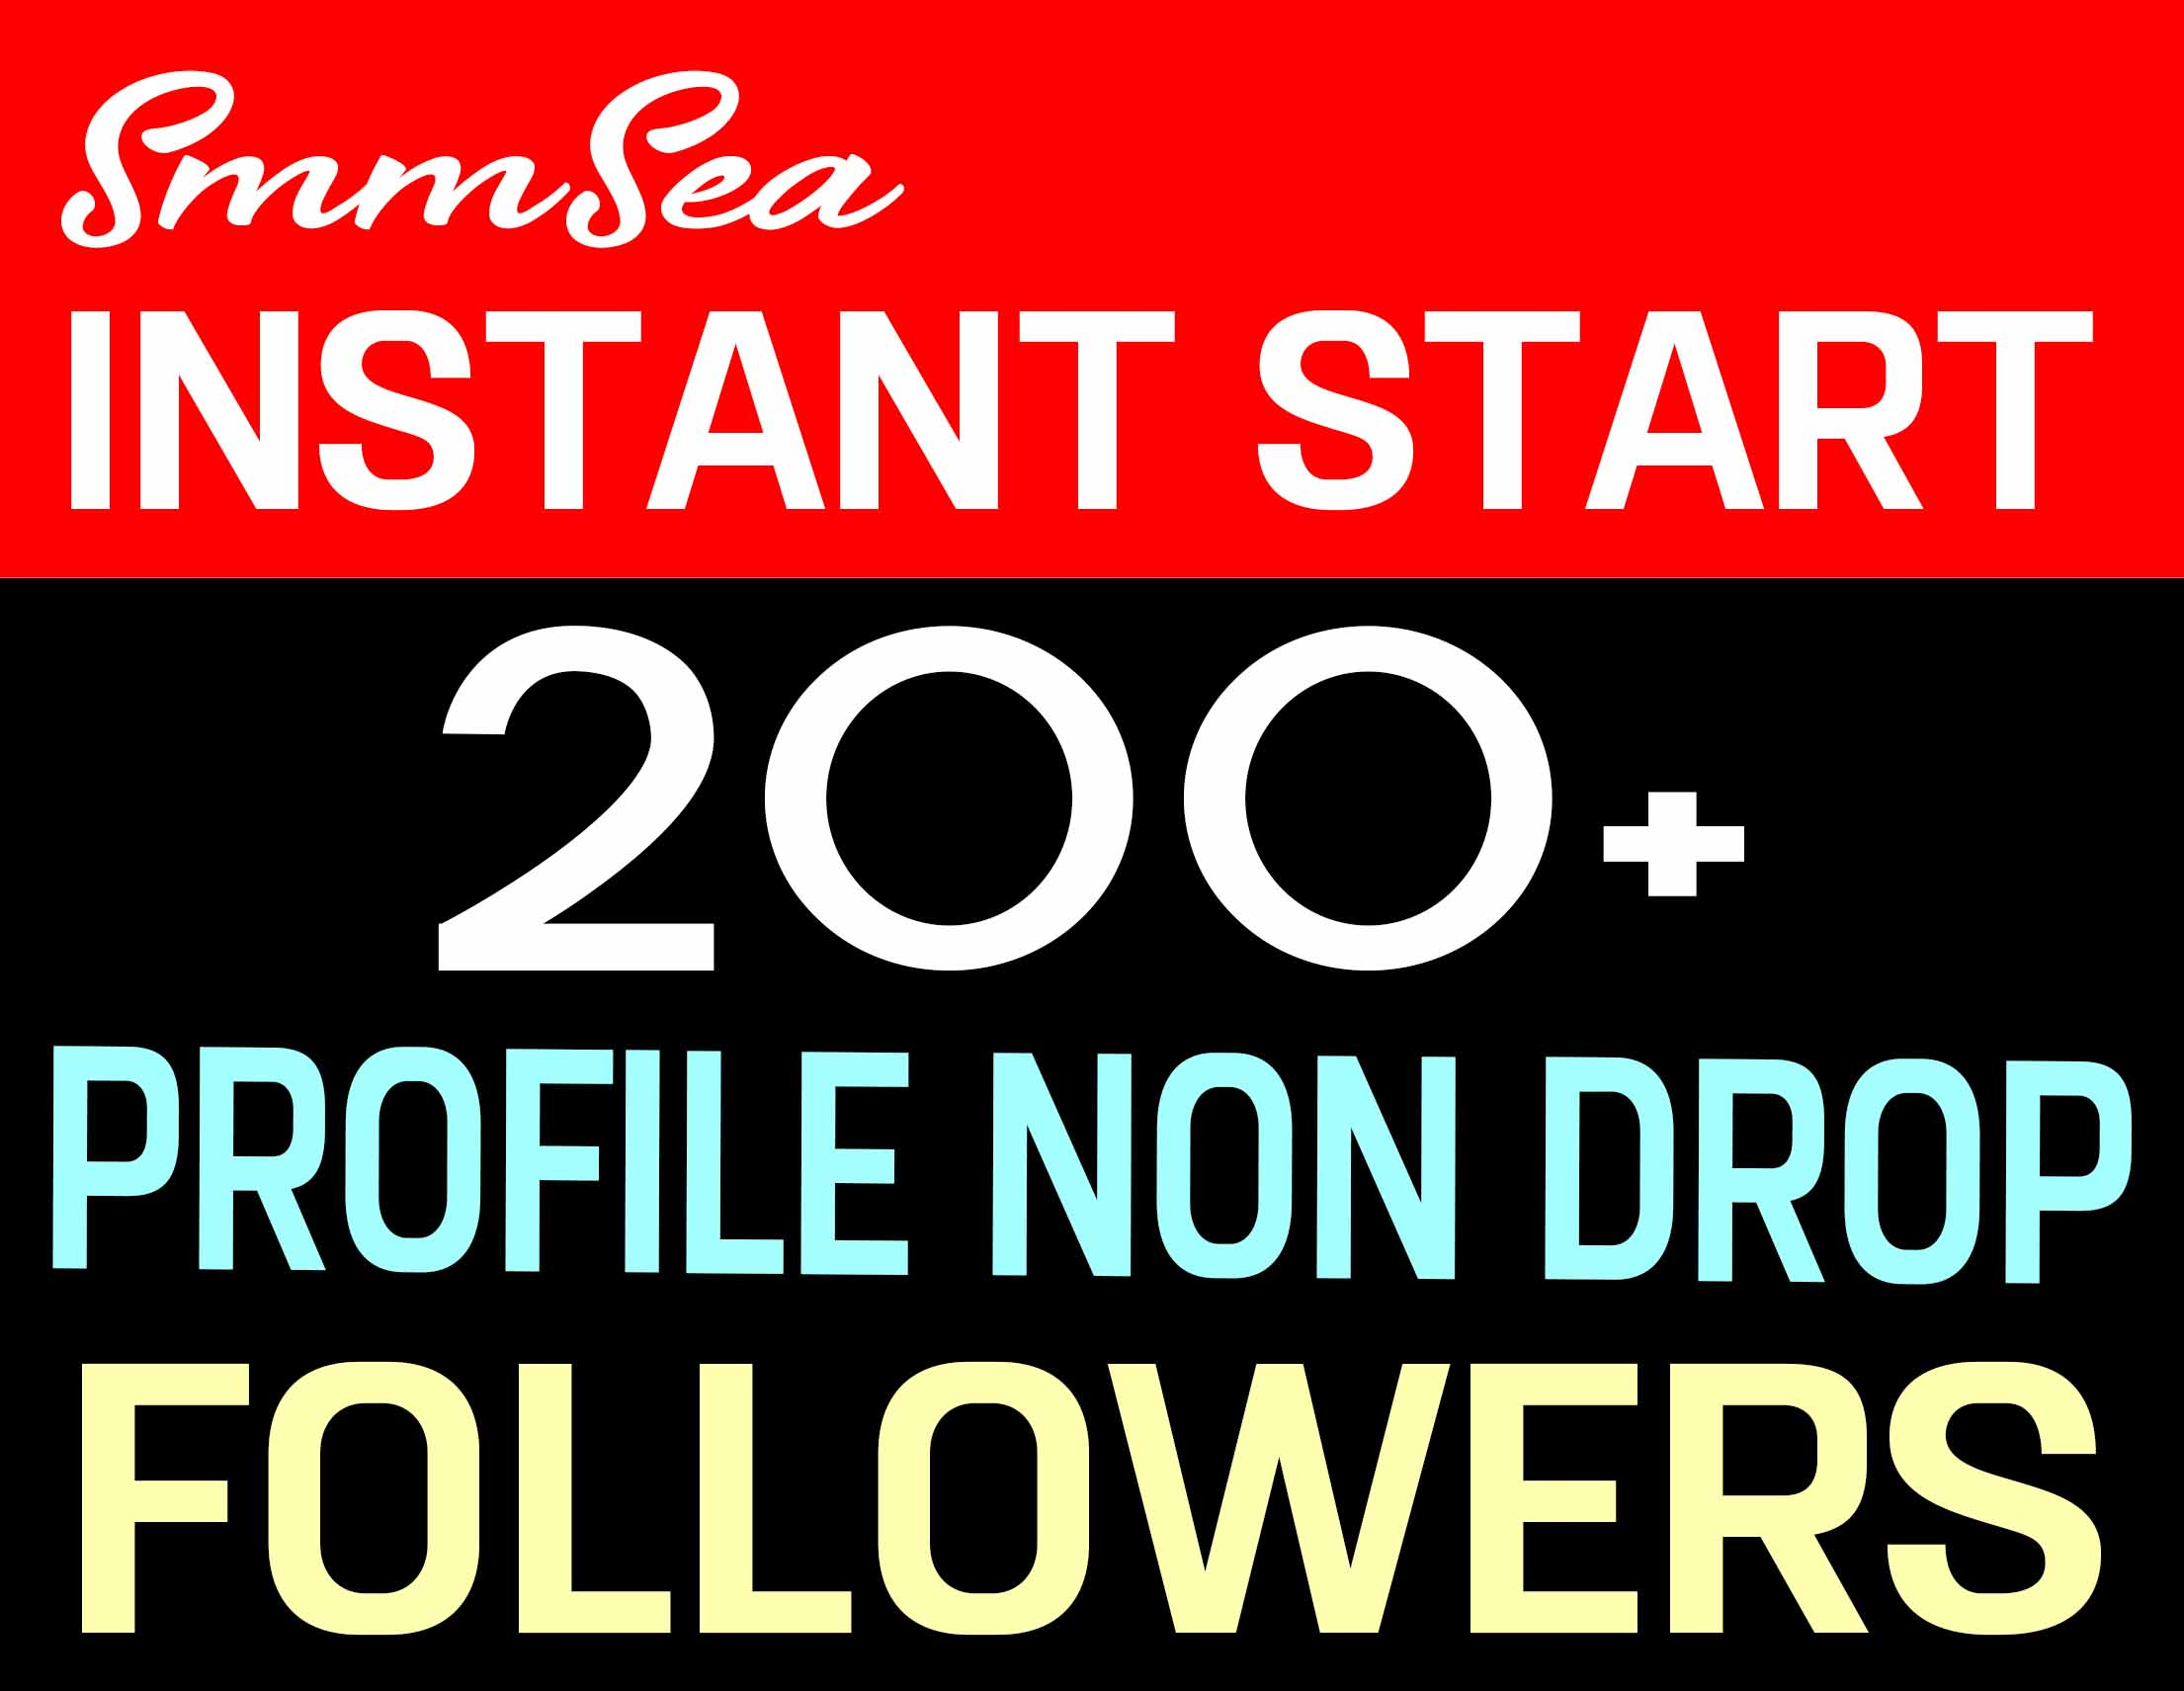 ADD 200+ PROFILE FOLLOWERS HIGH QUALITY AND NON DROP - INSTANTLY